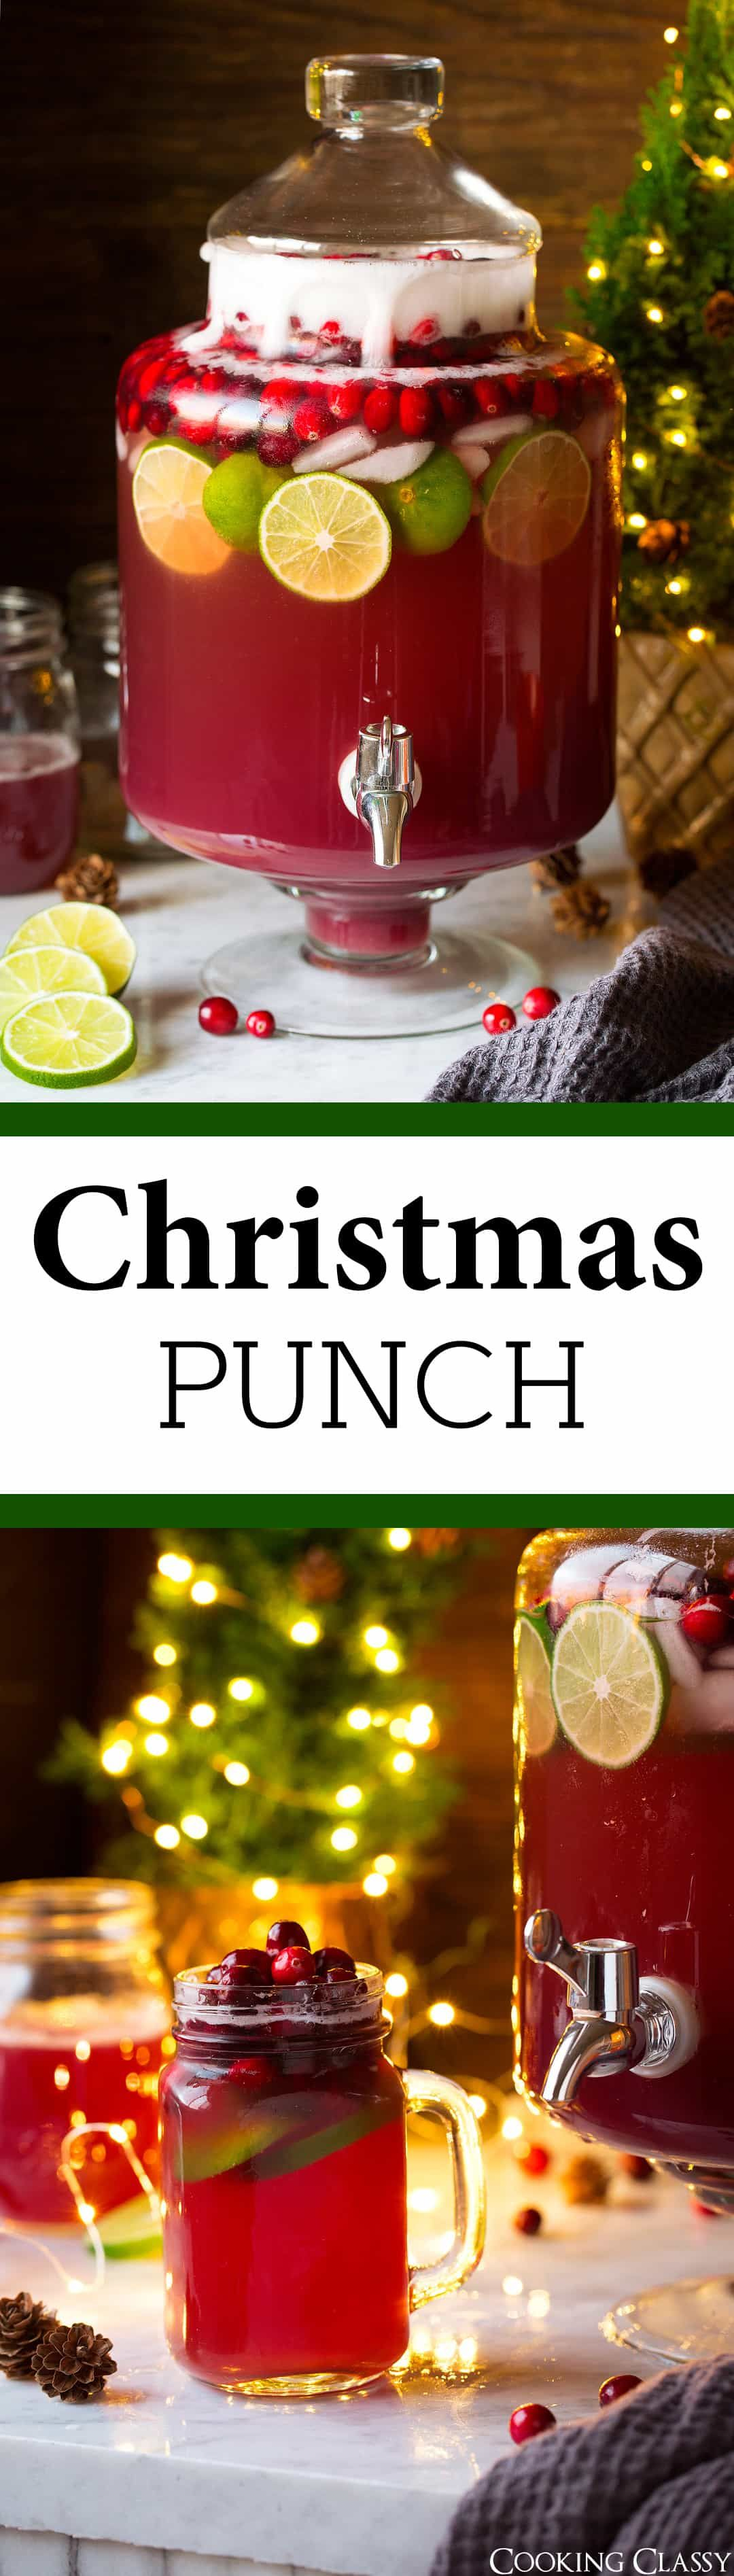 christmas punch 6cups cranberry juice or pomegranate cranberry juice 3 cups pineapple juice 1 tbsp - Christmas Punch Ideas